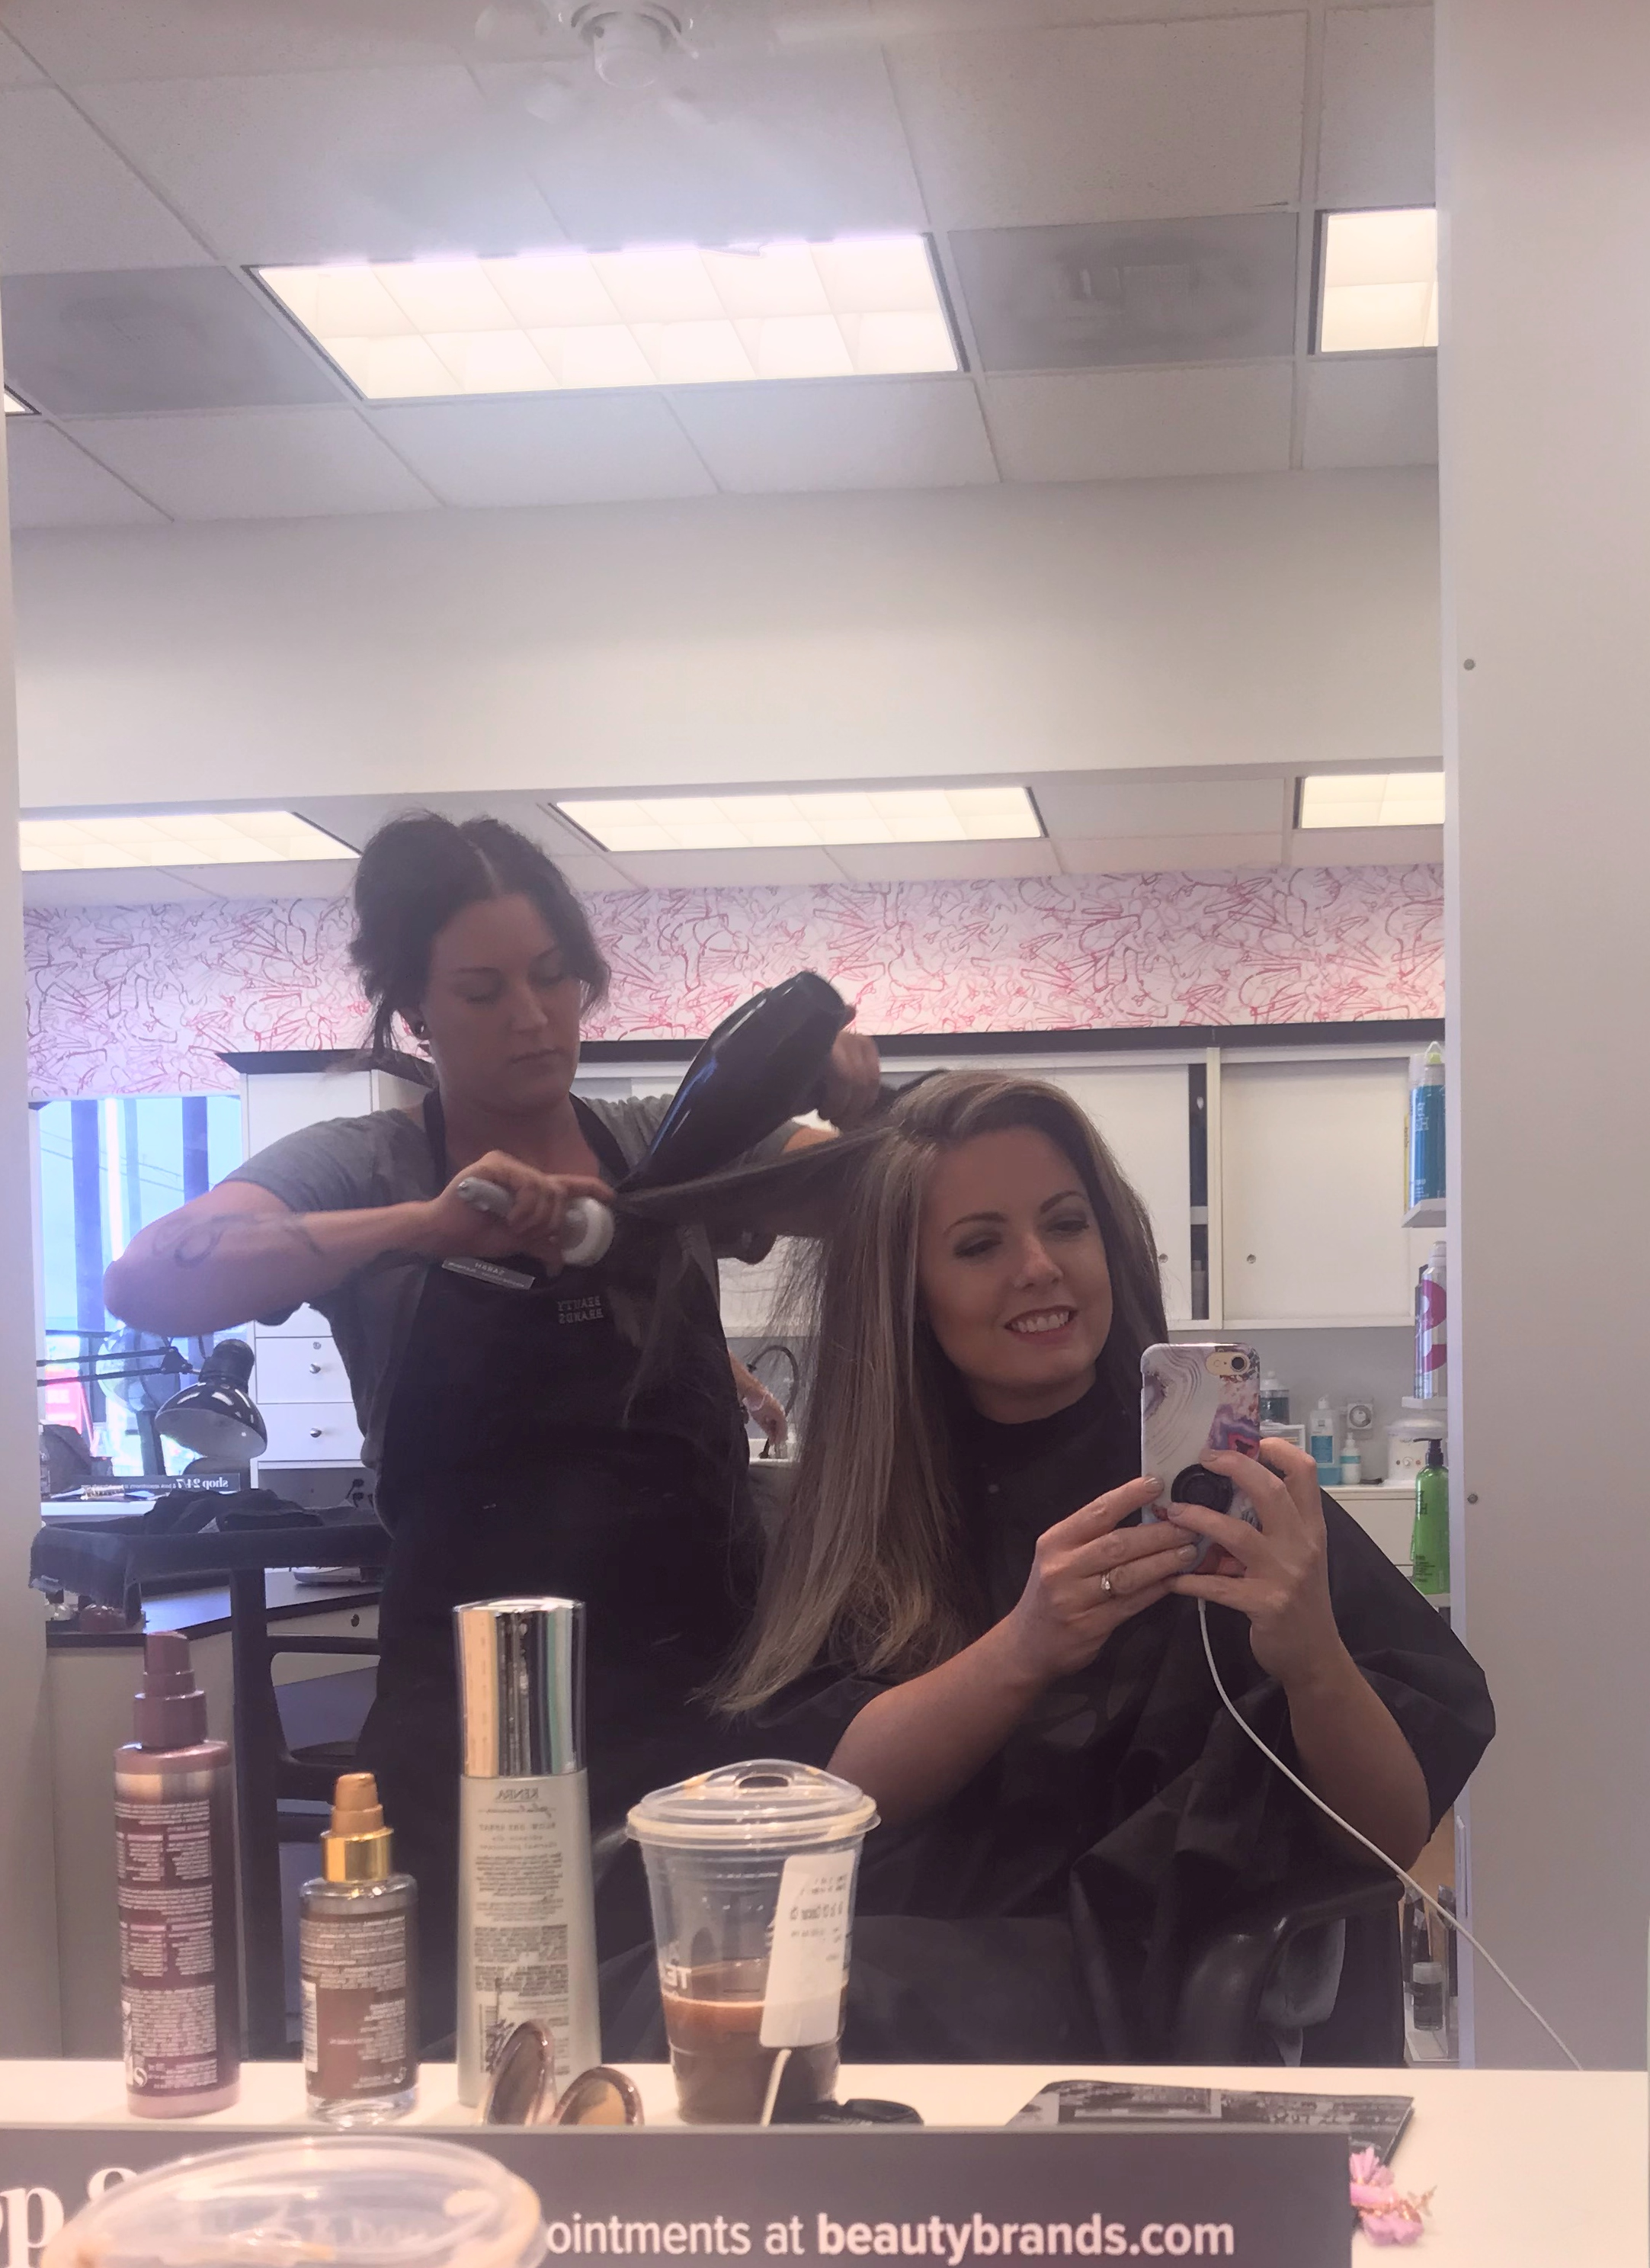 The blowout at Beauty Brands